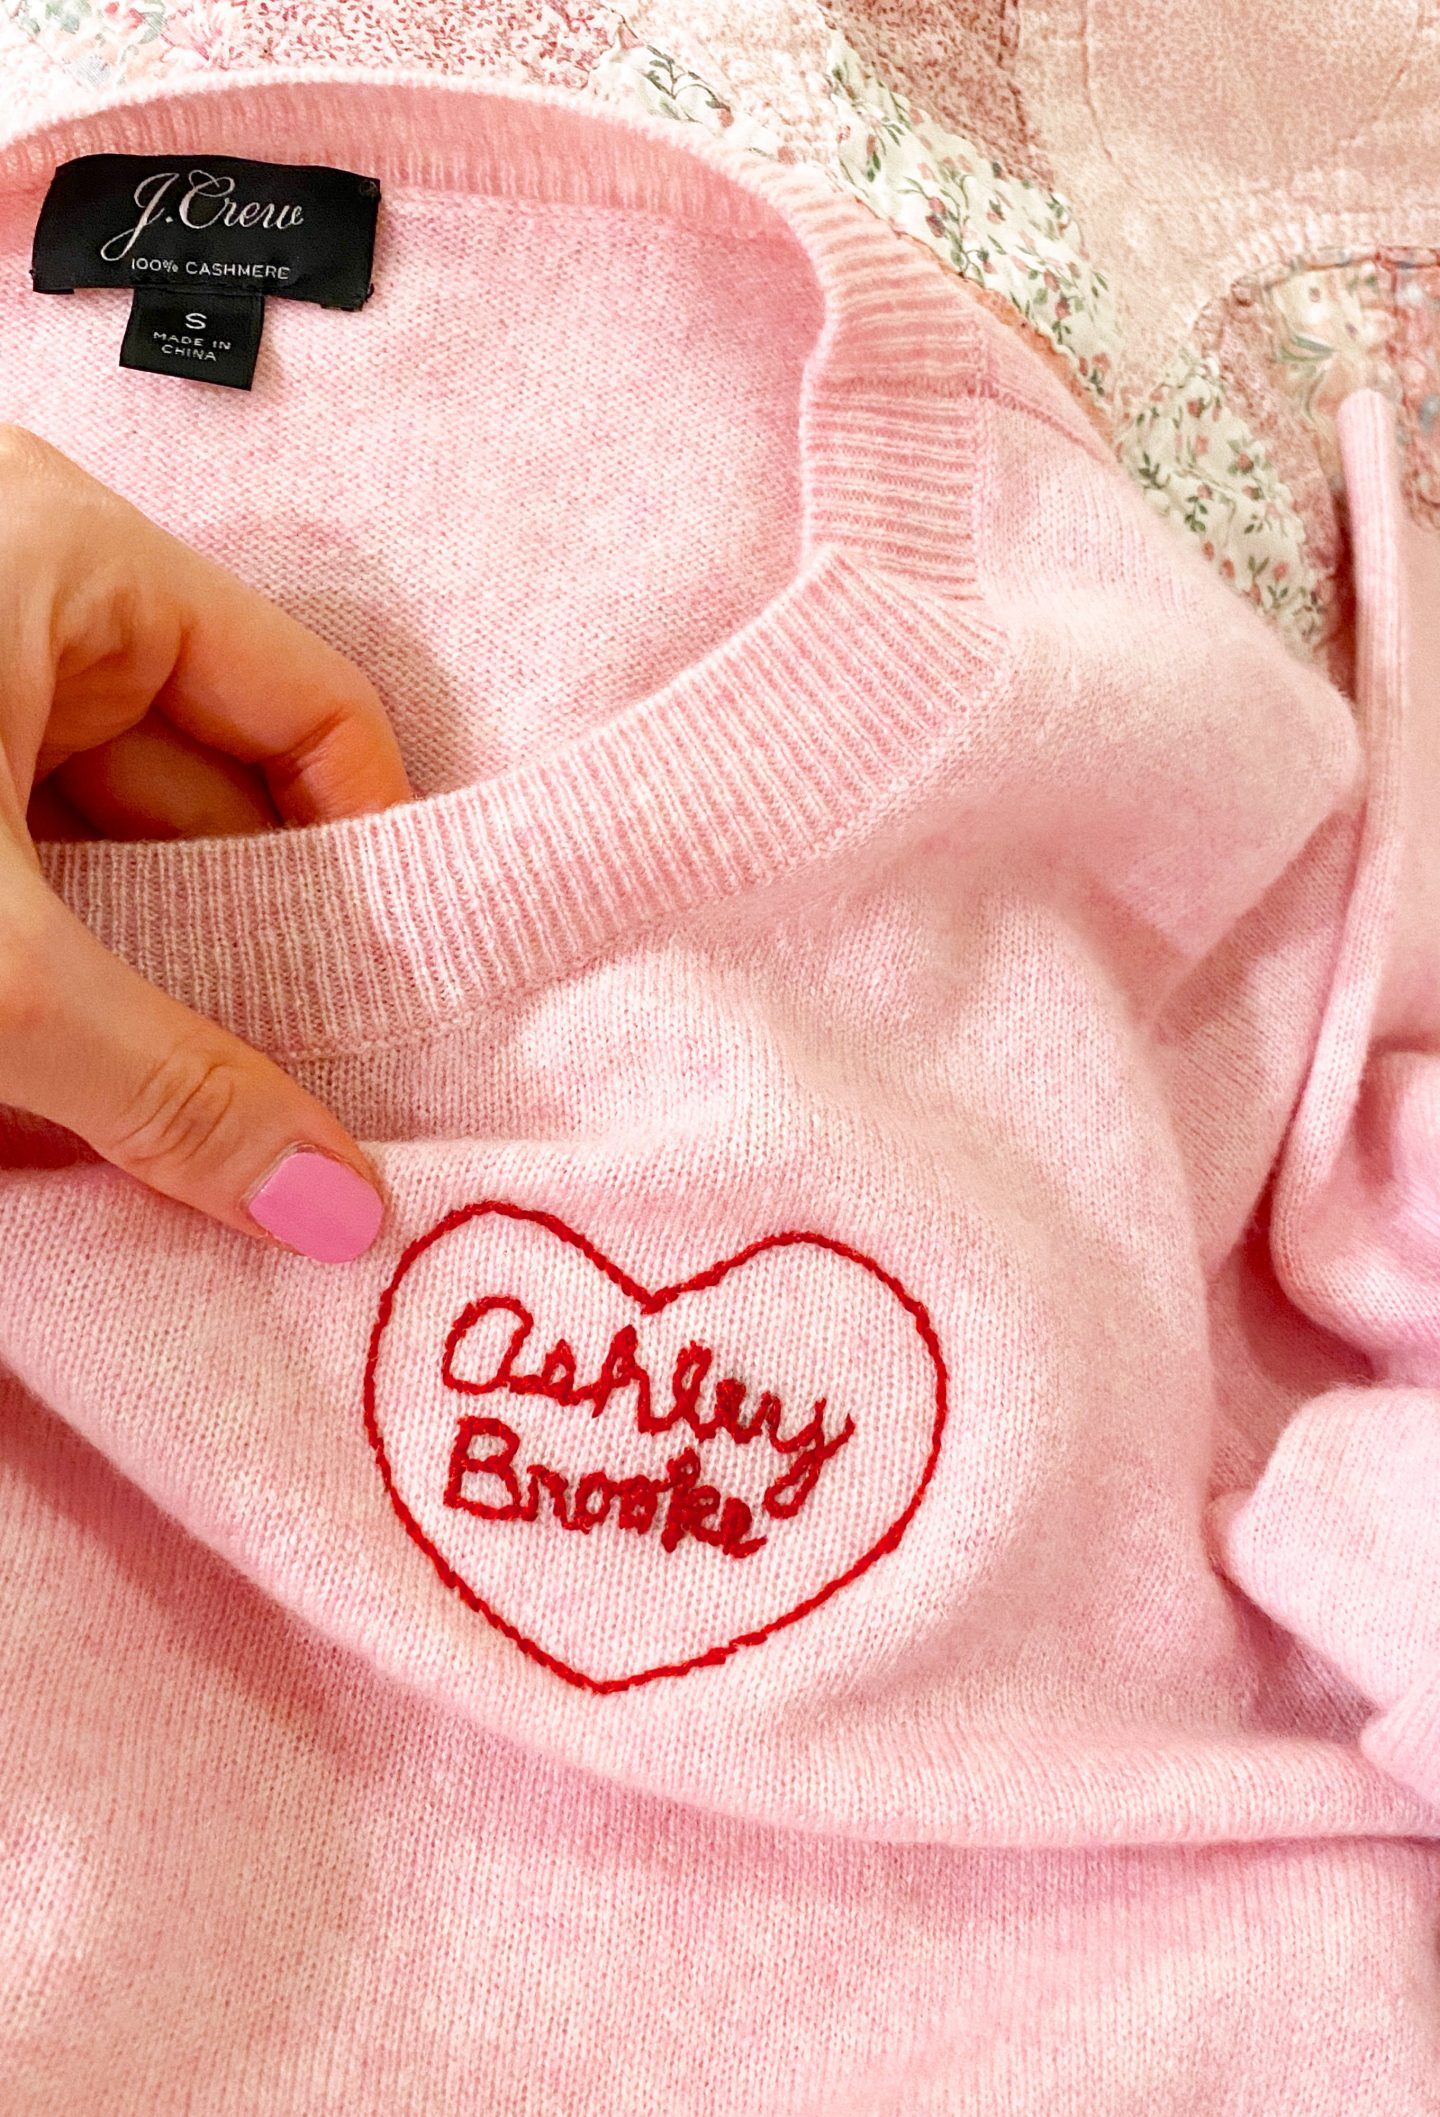 Ashley Brooke's embroidered heart sweater